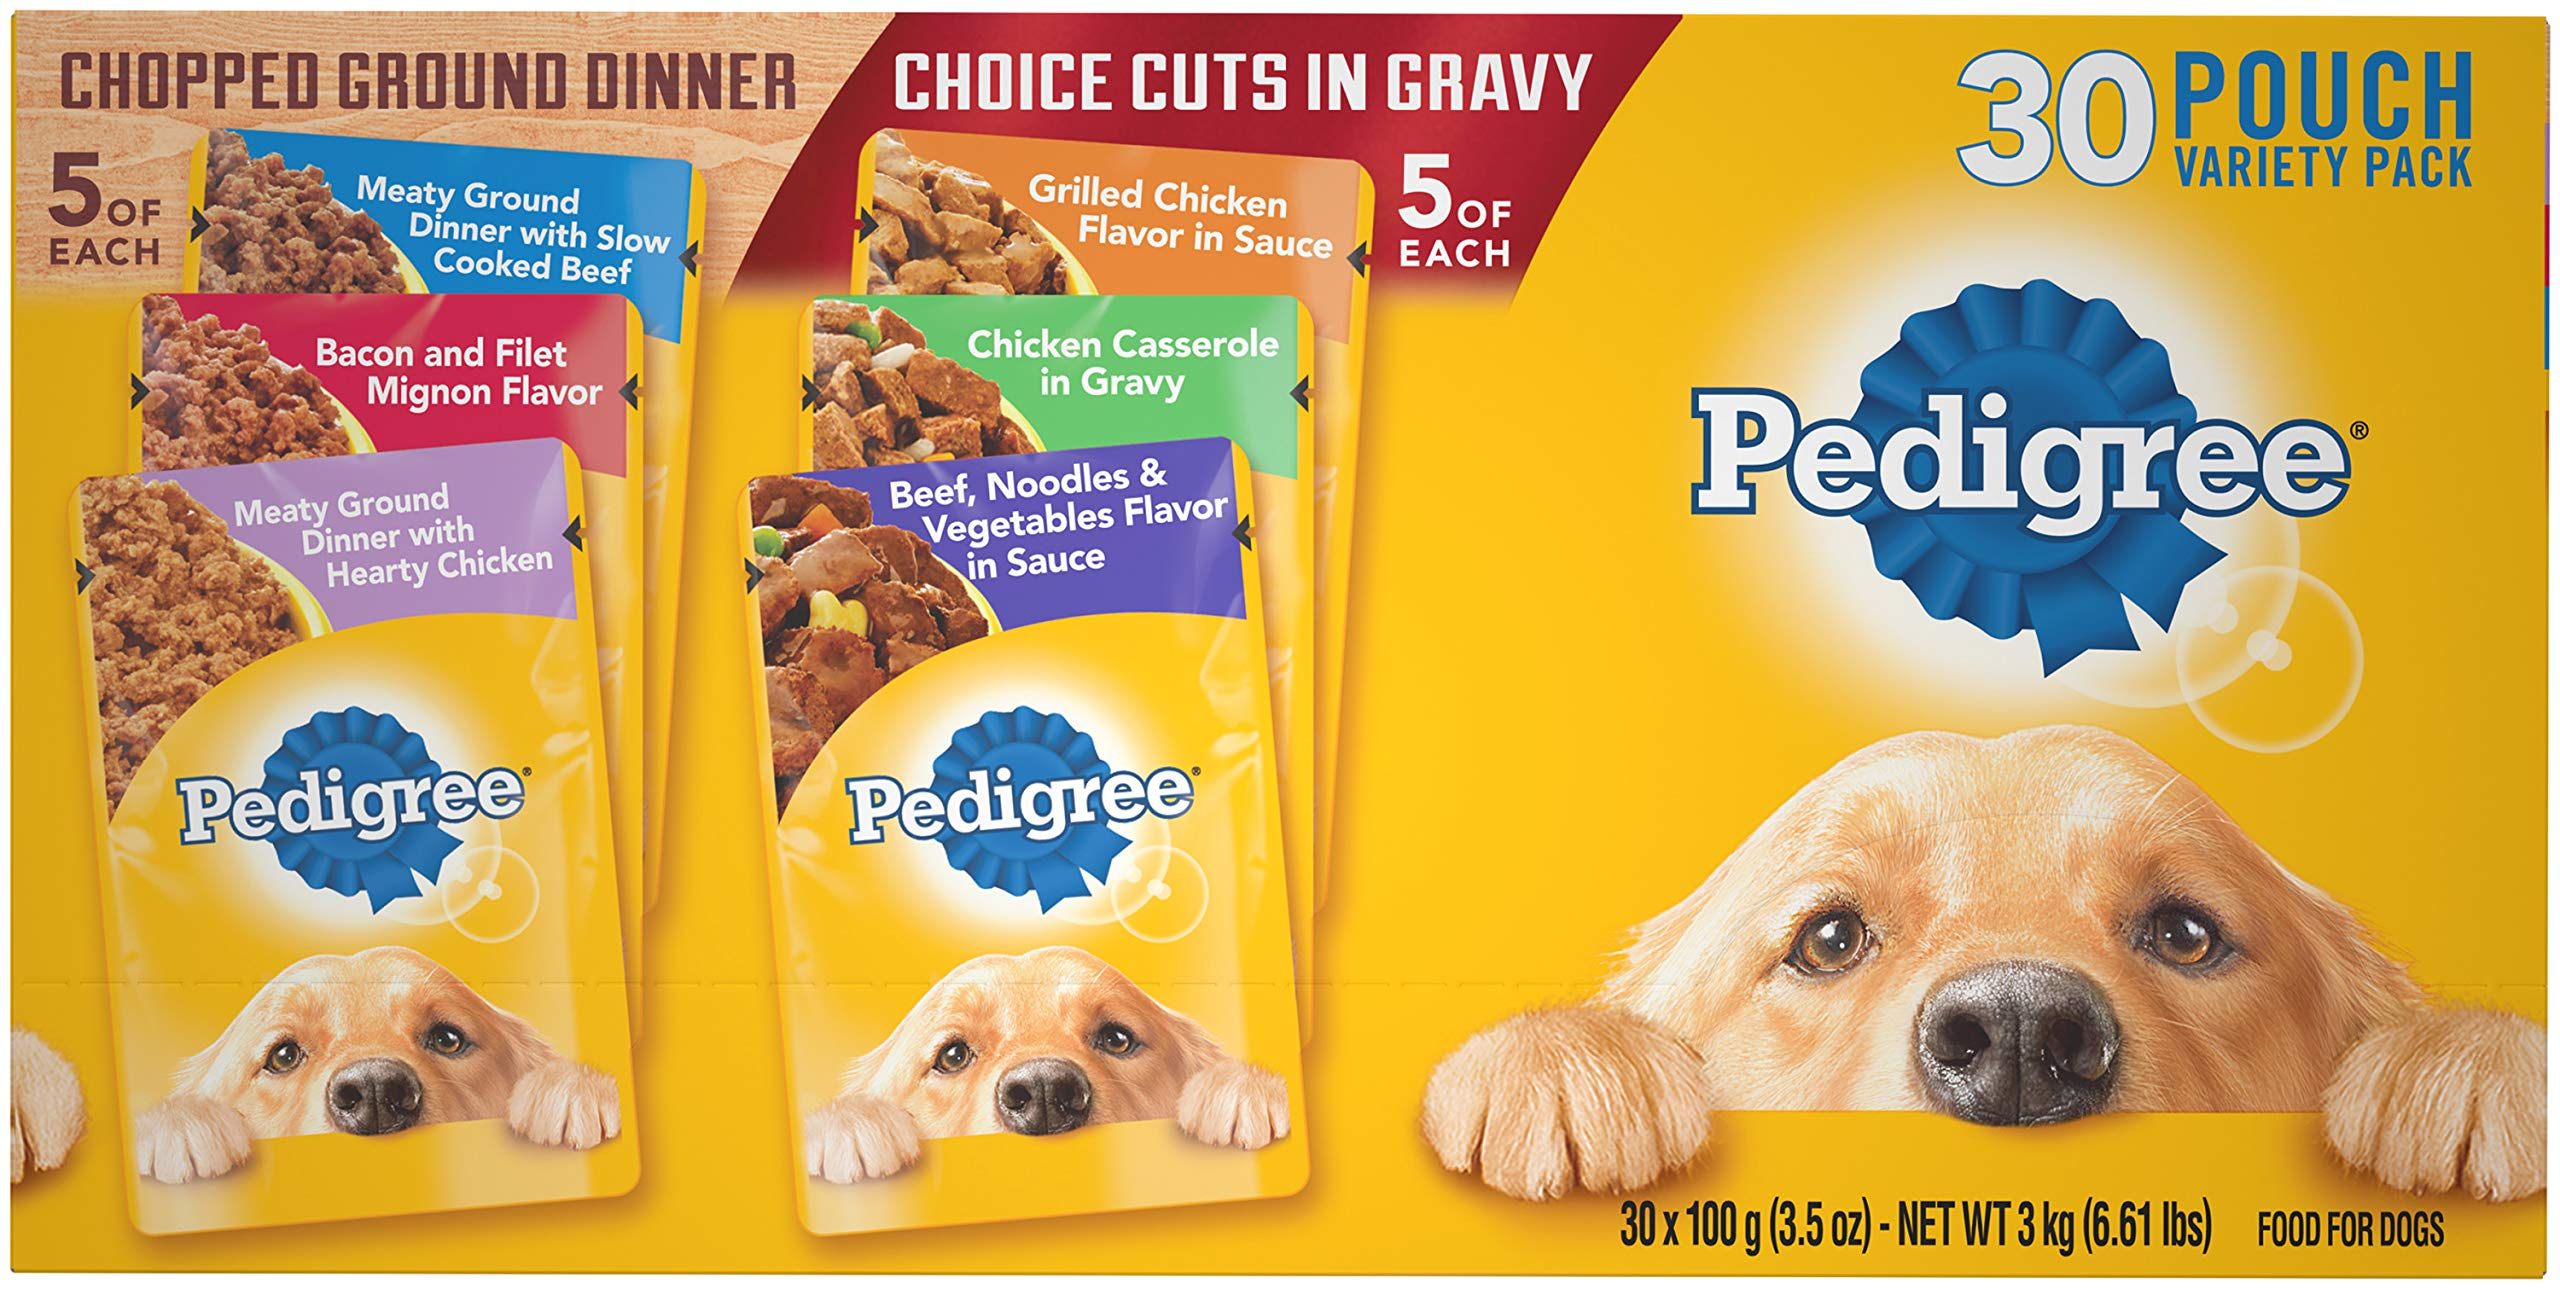 Pedigree Adult Wet Dog Food Chopped Ground Dinner & Choice CUTS in Gravy Food Variety Pack, (30) 3.5 oz. Pouches by Pedigree